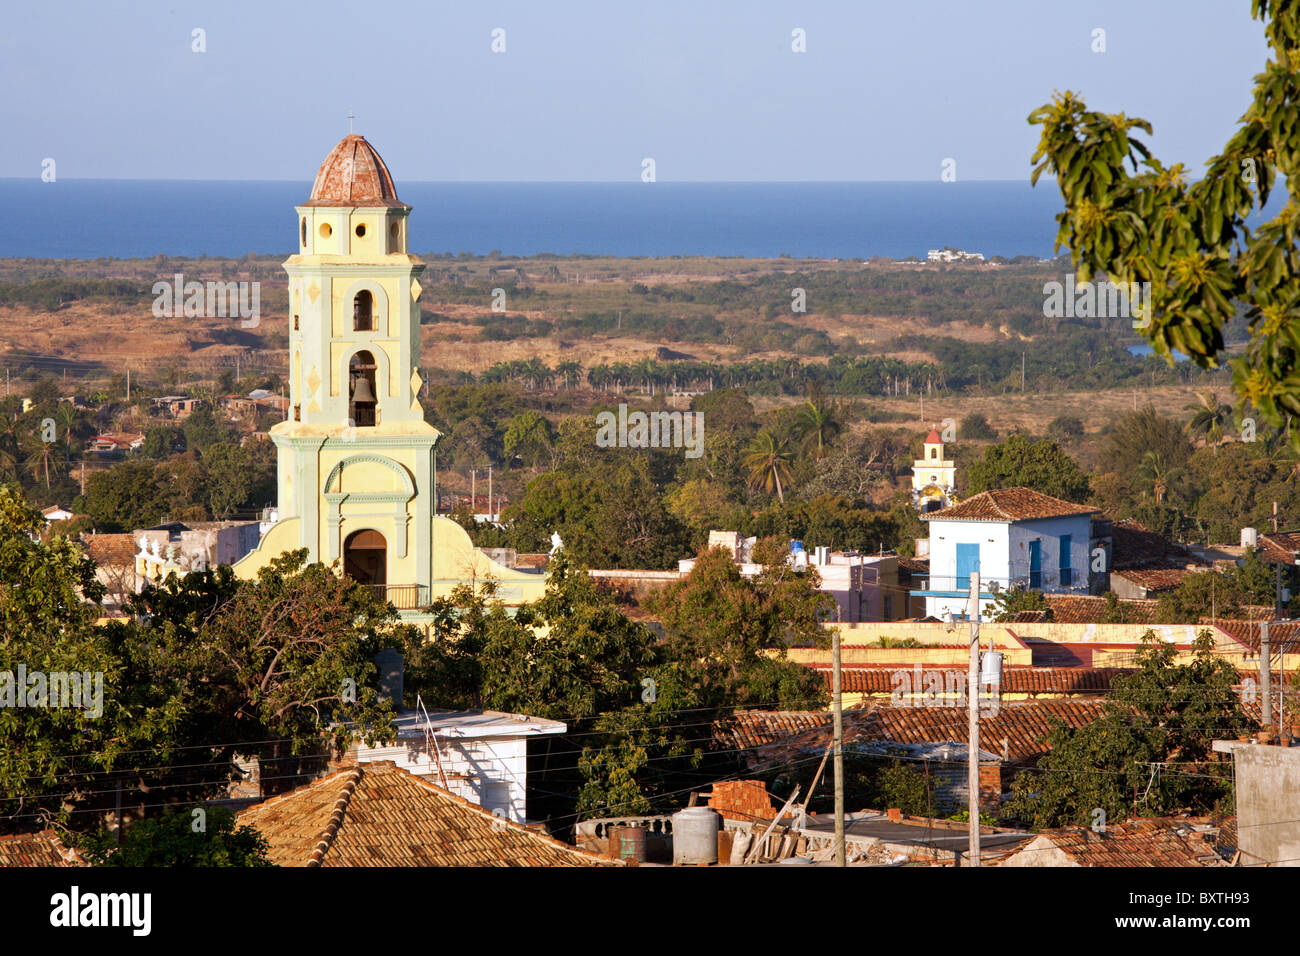 TRINIDAD: HIGH VIEW OVER TRINIDAD ROOFTOPS AND OF THE ST FRANCISCO CONVENT - Stock Image